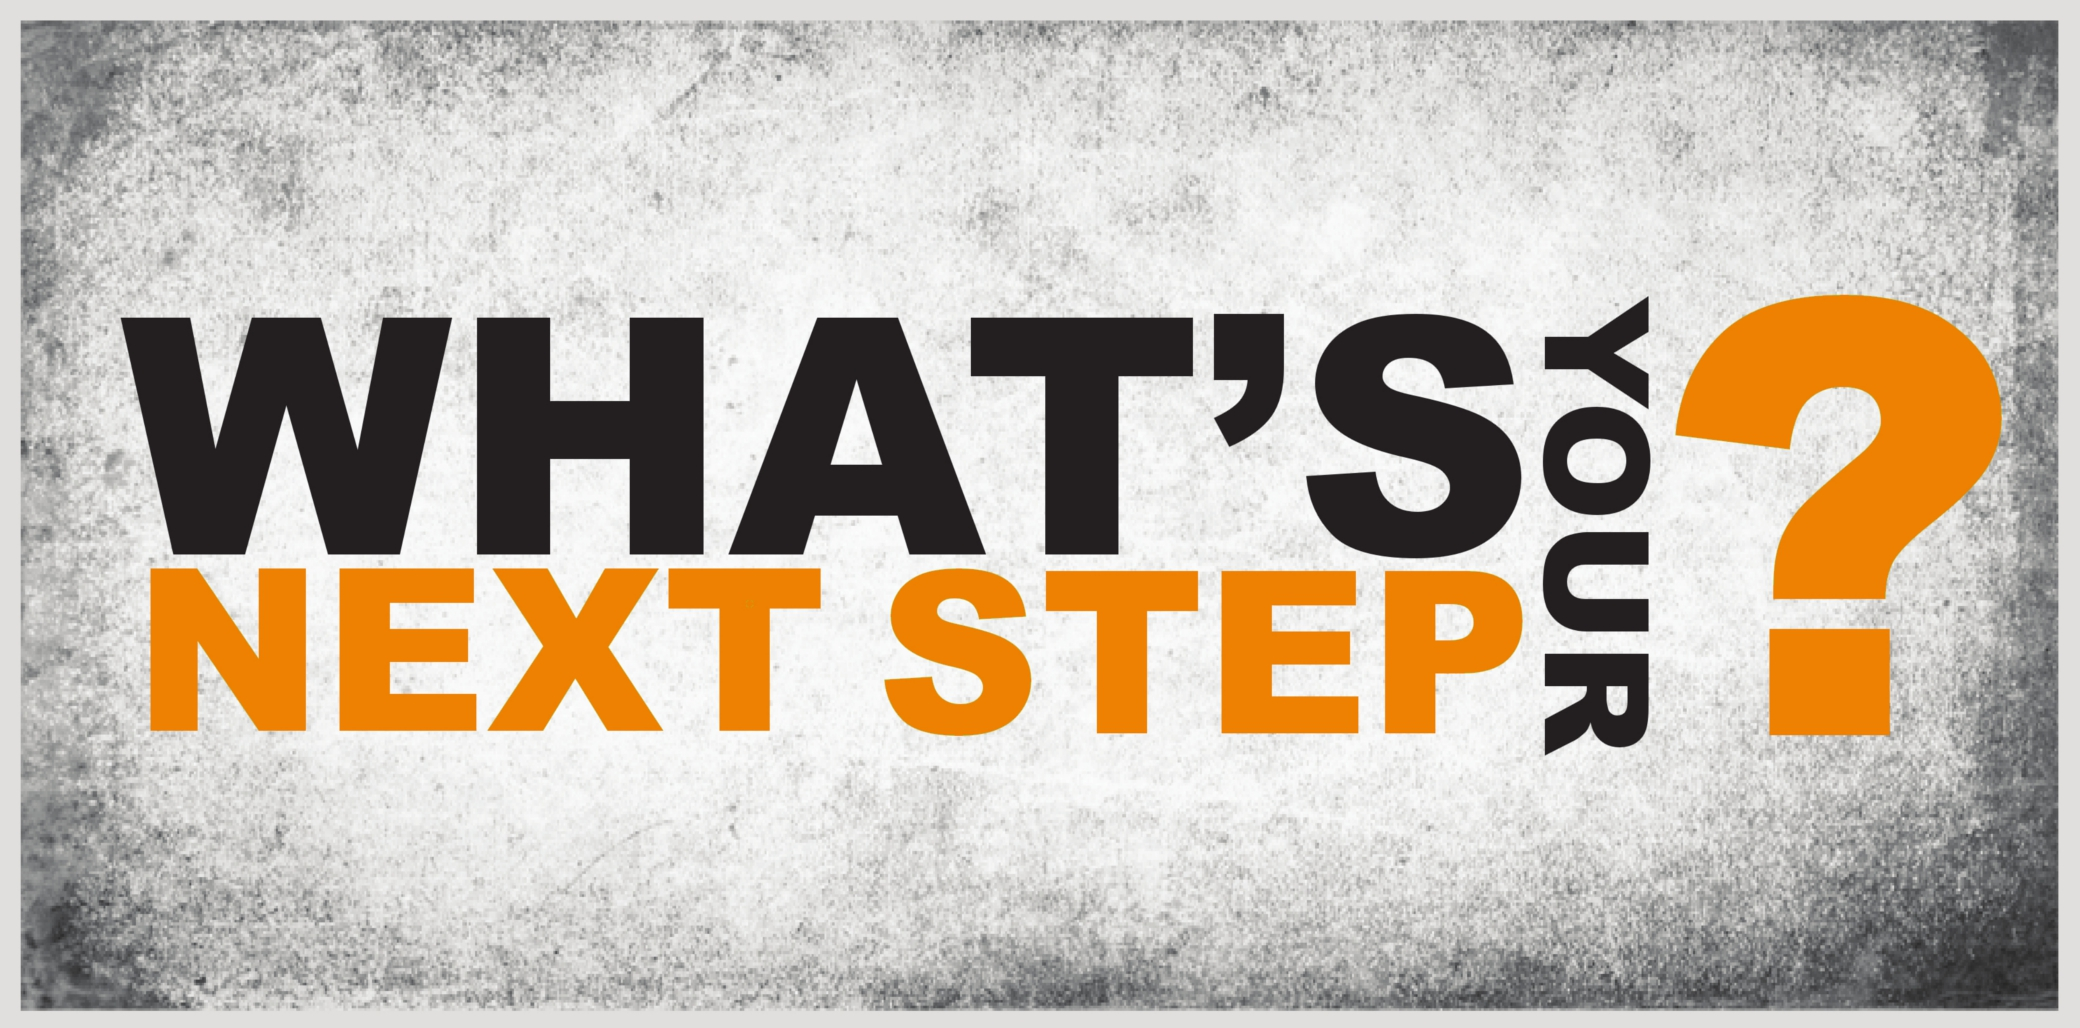 Take How Next Step The To